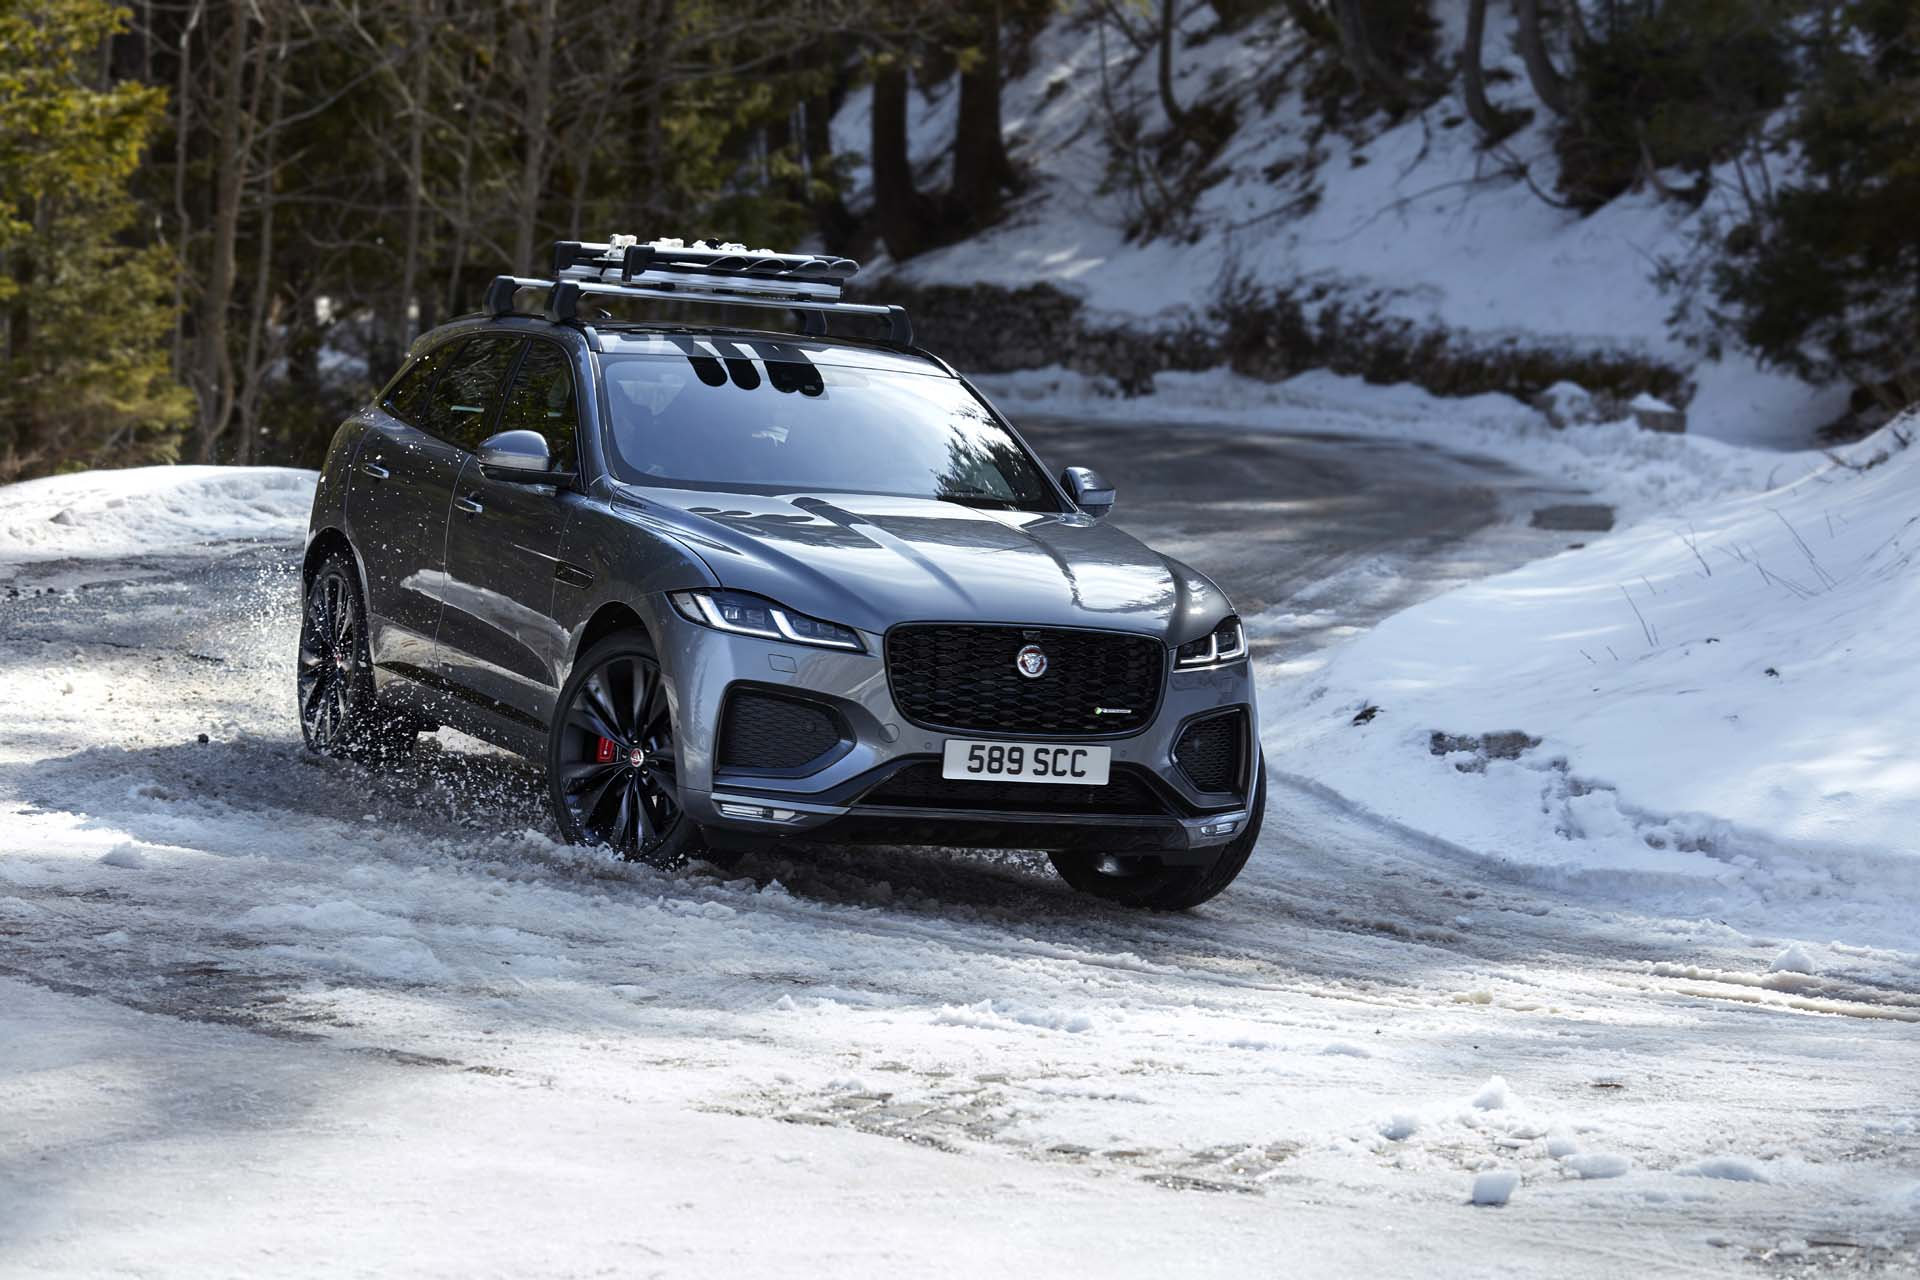 Preview: 5 Jaguar F-Pace ups the luxury, style